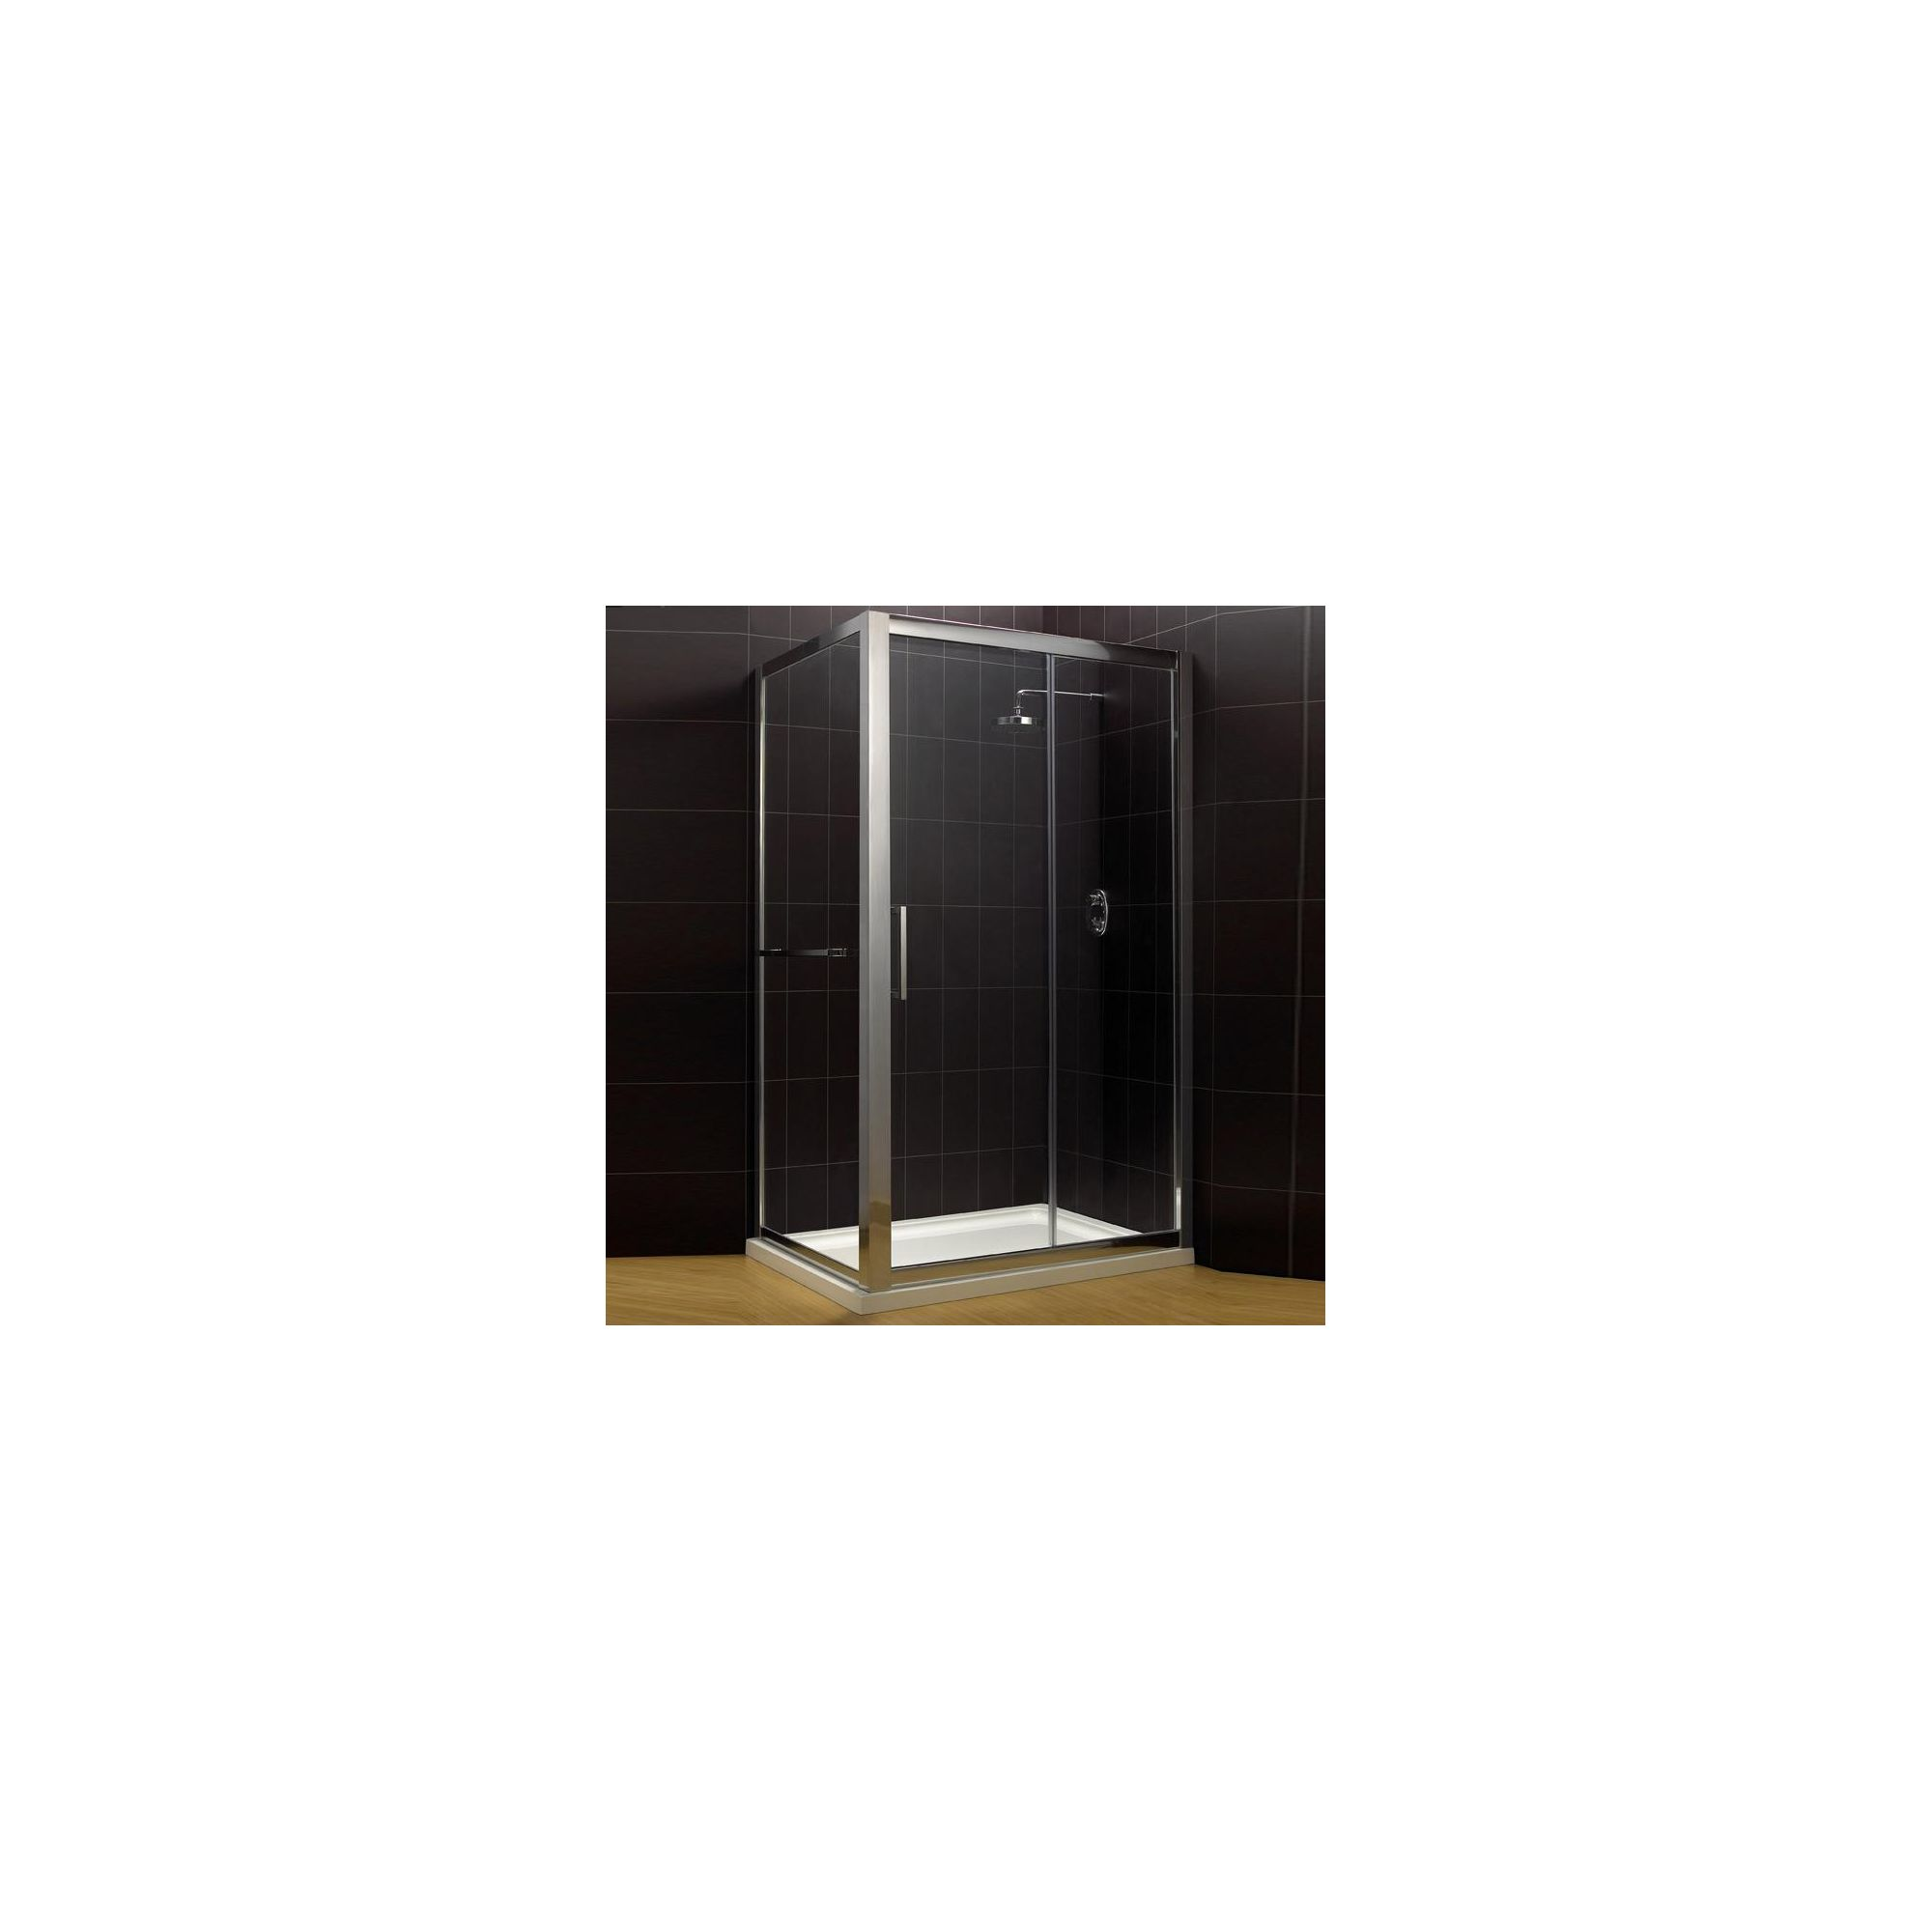 Duchy Supreme Silver Sliding Door Shower Enclosure with Towel Rail, 1200mm x 900mm, Standard Tray, 8mm Glass at Tesco Direct